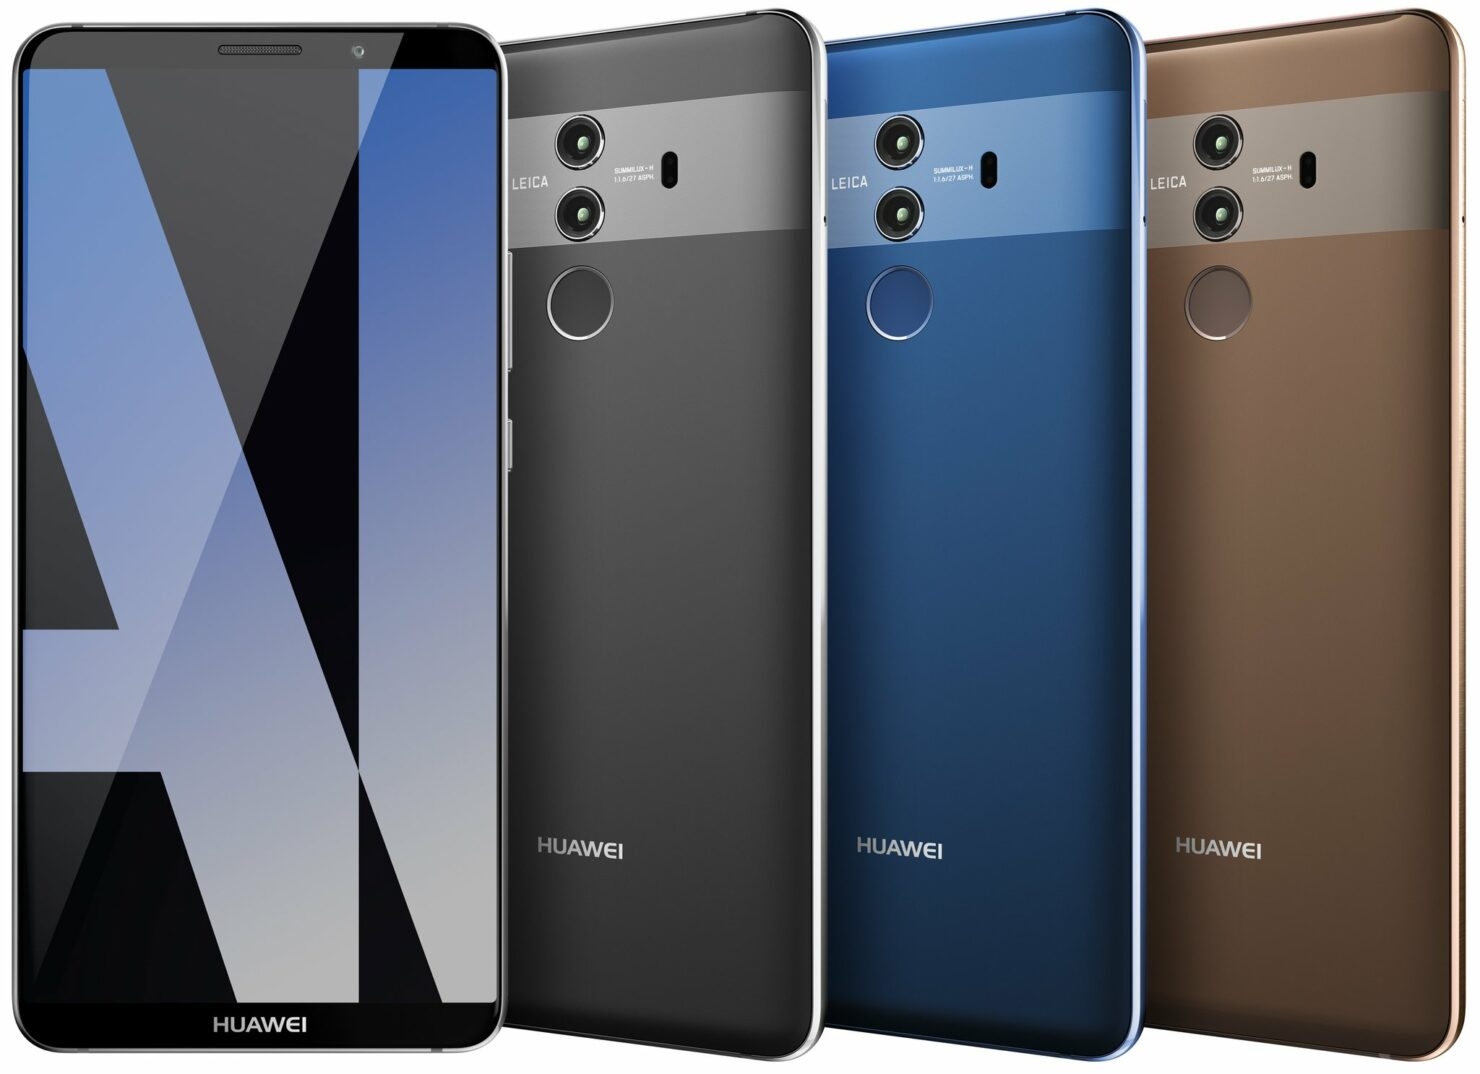 Huawei Mate 20 & Mate 20 Pro Will Not Feature 5G Connectivity - Company's First 5G Phone to Land in 2019